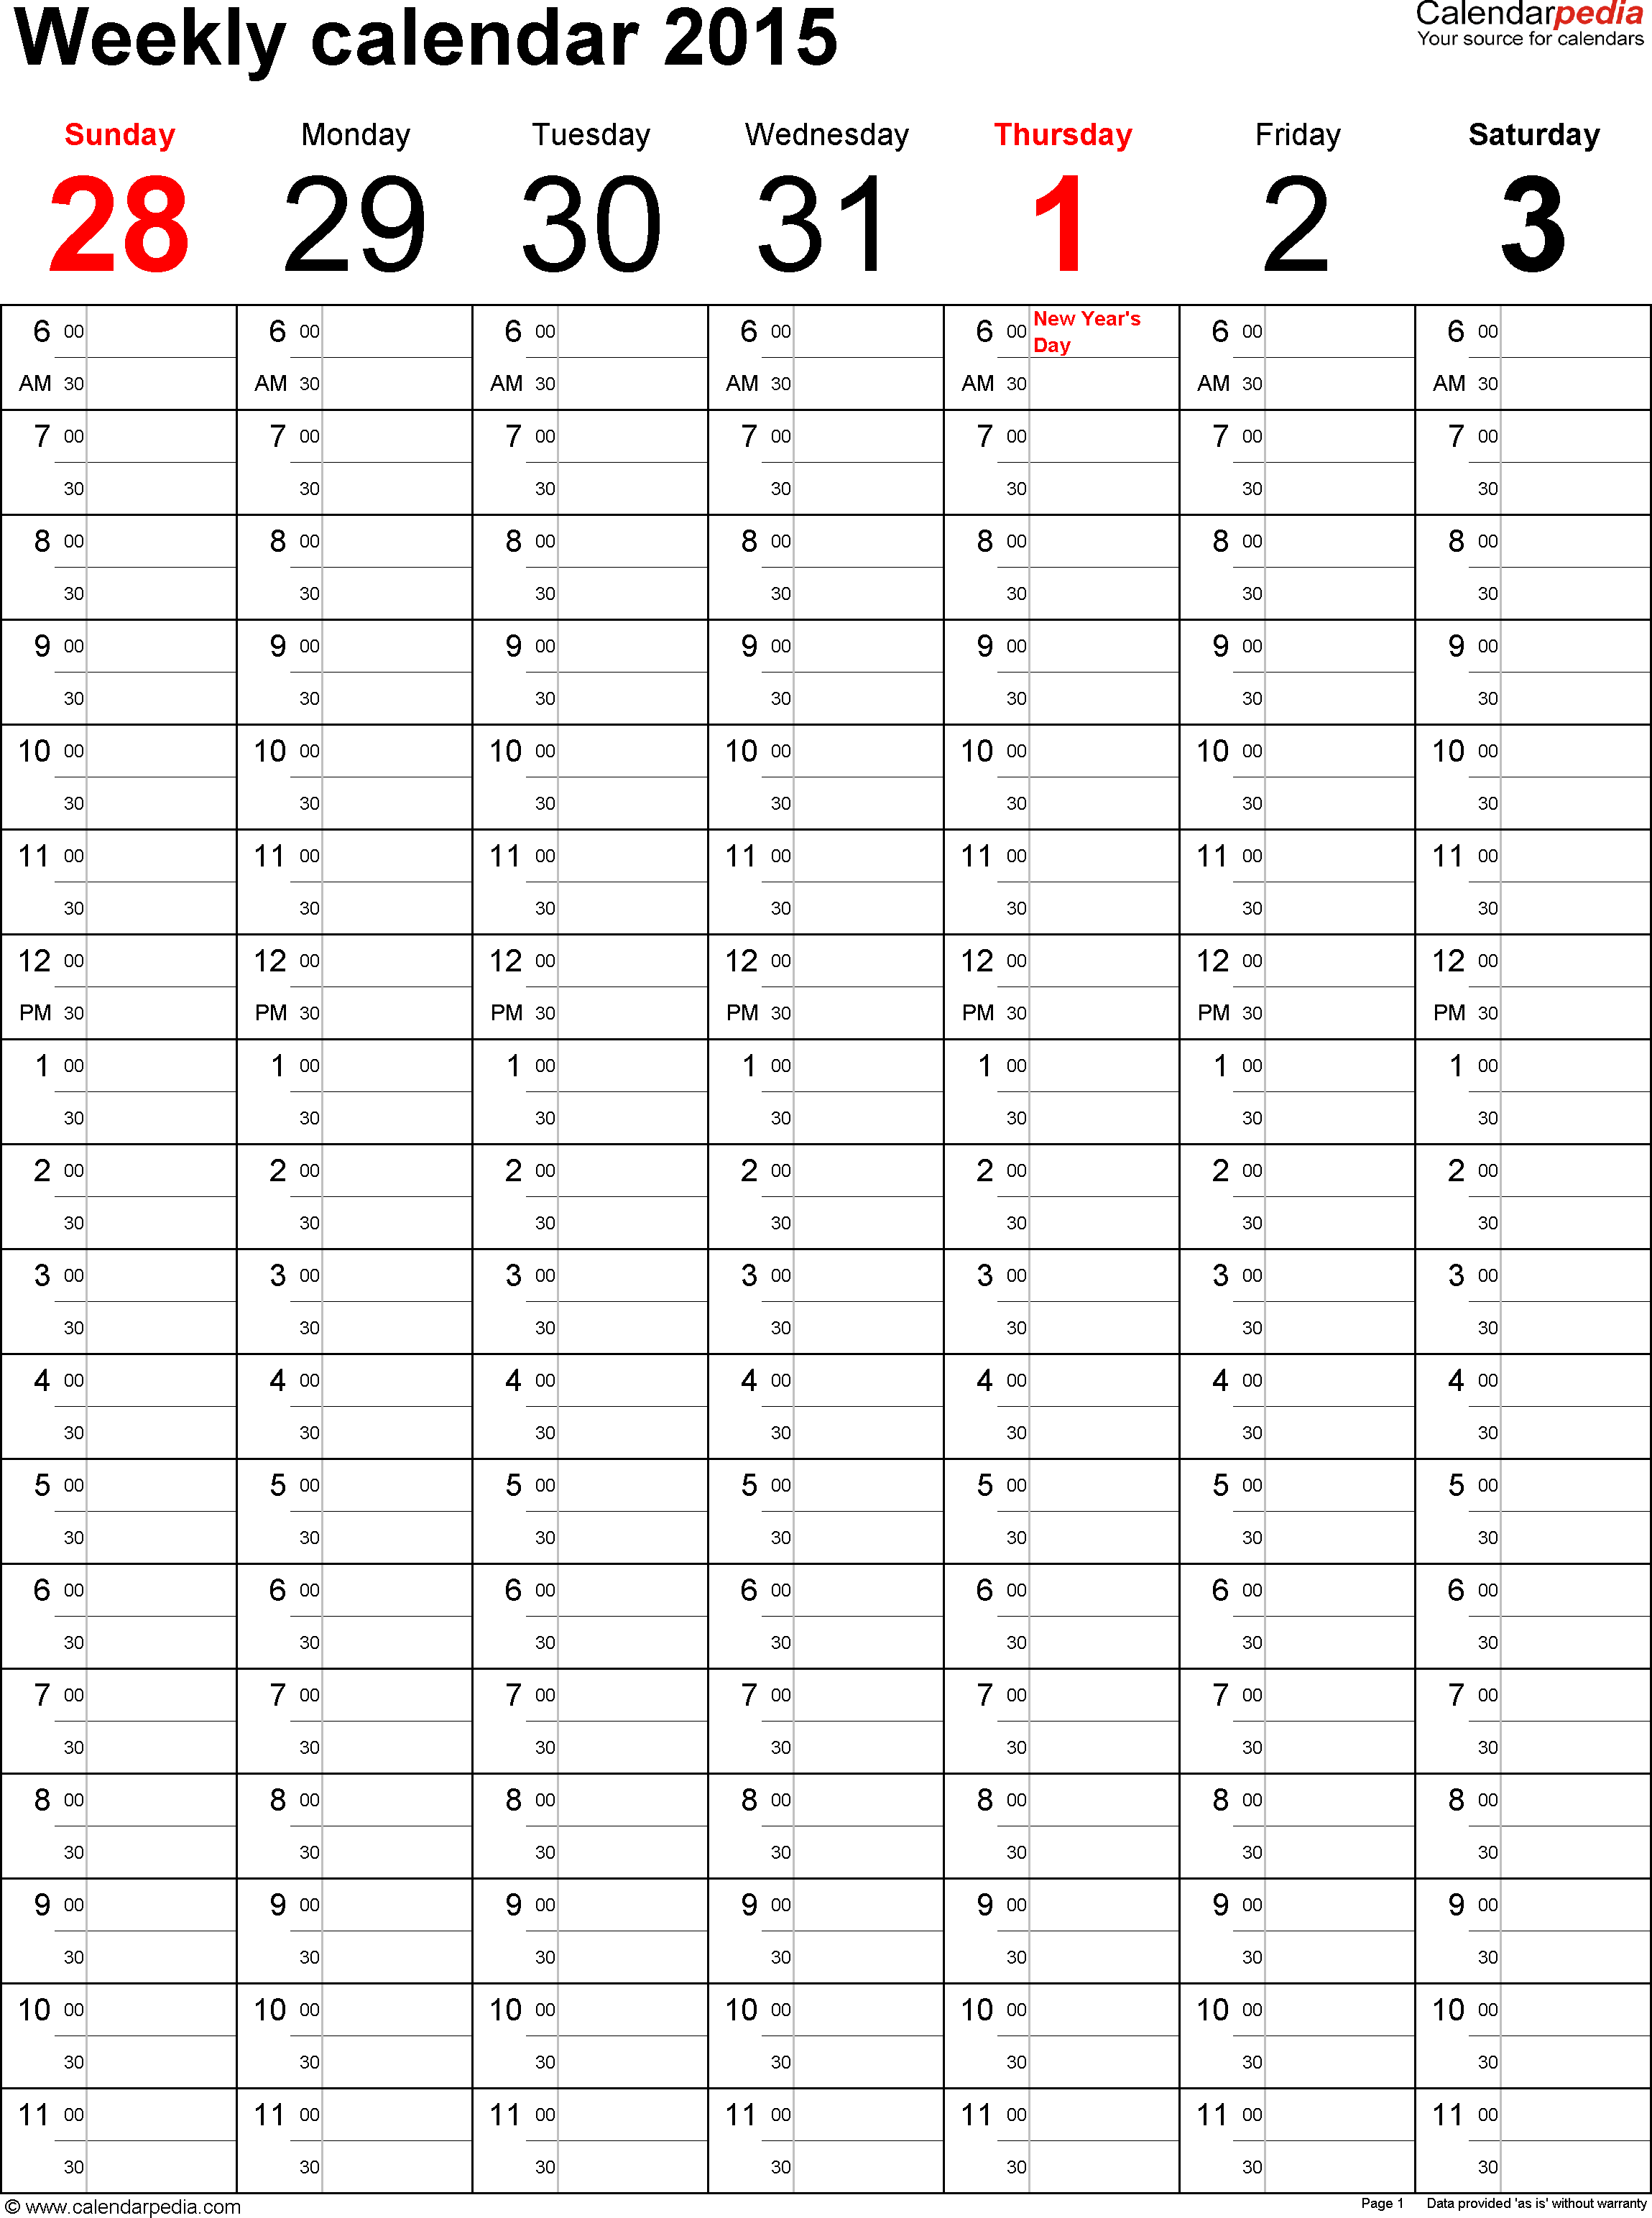 Weekly Calendar Images : Weekly calendar for excel free printable templates